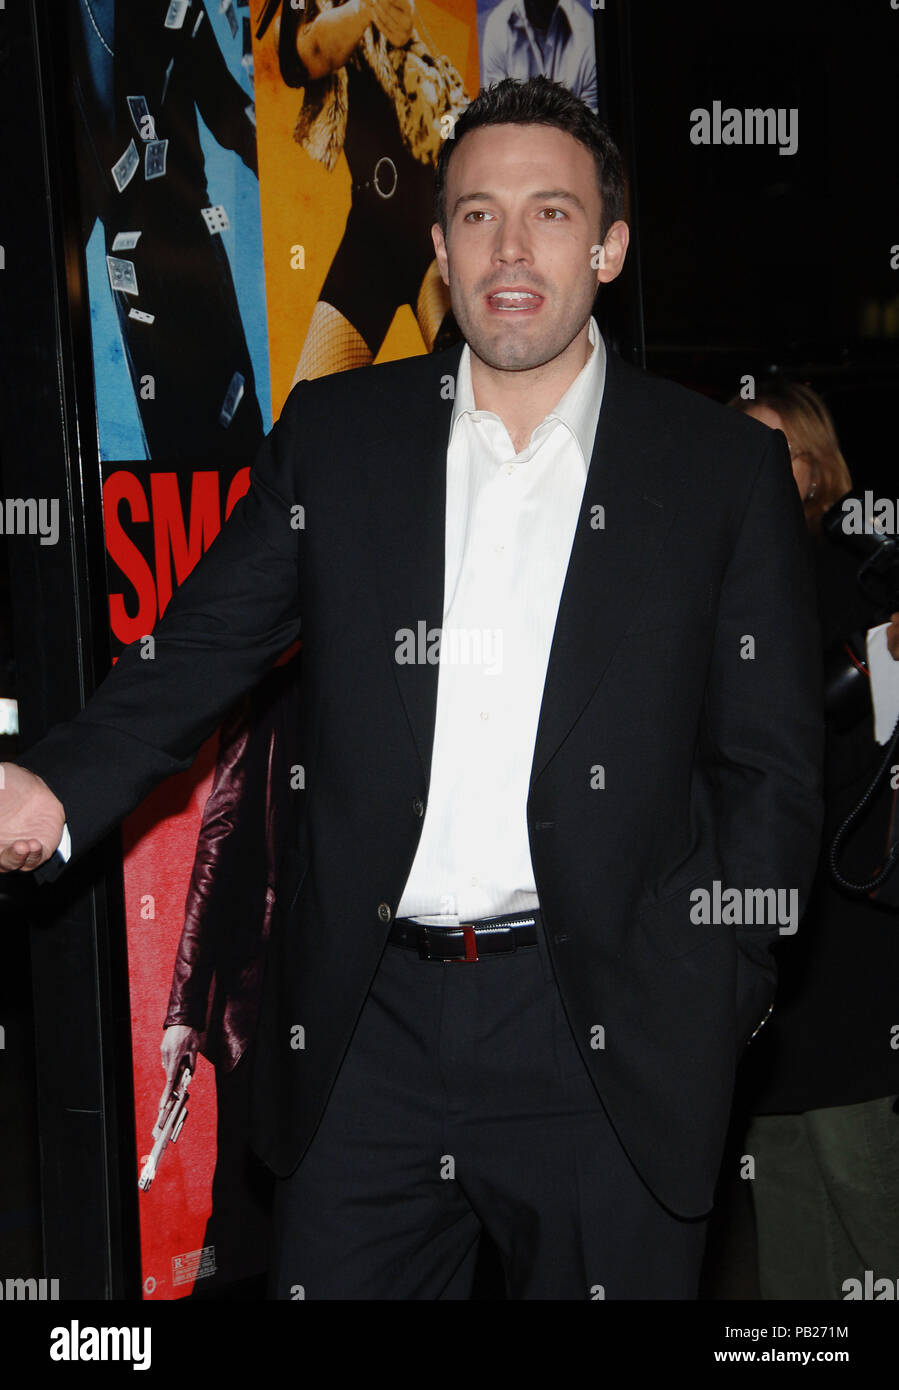 Ben Affleck arriving at the Smokin' Aces at the Chinese Theatre In Los Angeles. January 18, 2007.  3/4AffleckBen051 Red Carpet Event, Vertical, USA, Film Industry, Celebrities,  Photography, Bestof, Arts Culture and Entertainment, Topix Celebrities fashion /  Vertical, Best of, Event in Hollywood Life - California,  Red Carpet and backstage, USA, Film Industry, Celebrities,  movie celebrities, TV celebrities, Music celebrities, Photography, Bestof, Arts Culture and Entertainment,  Topix, vertical, one person,, from the years , 2006 to 2009, inquiry tsuni@Gamma-USA.com - Three Quarters - Stock Image